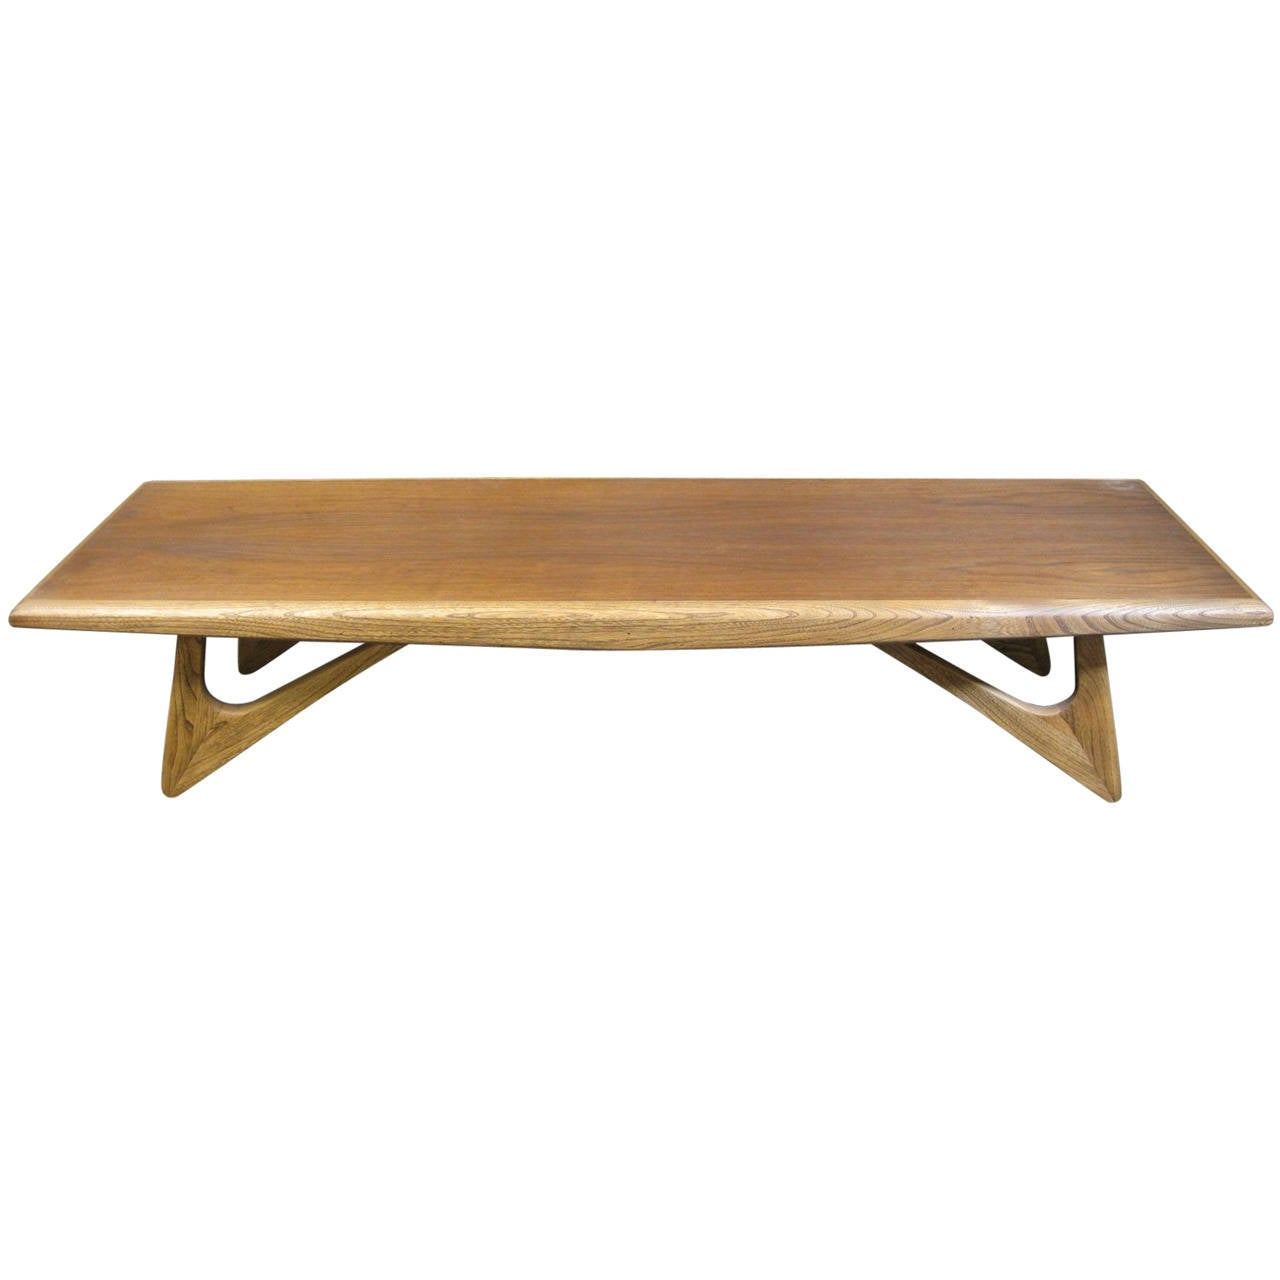 Adrian pearsall style coffee table mid century modern at for Mid century modern coffee table